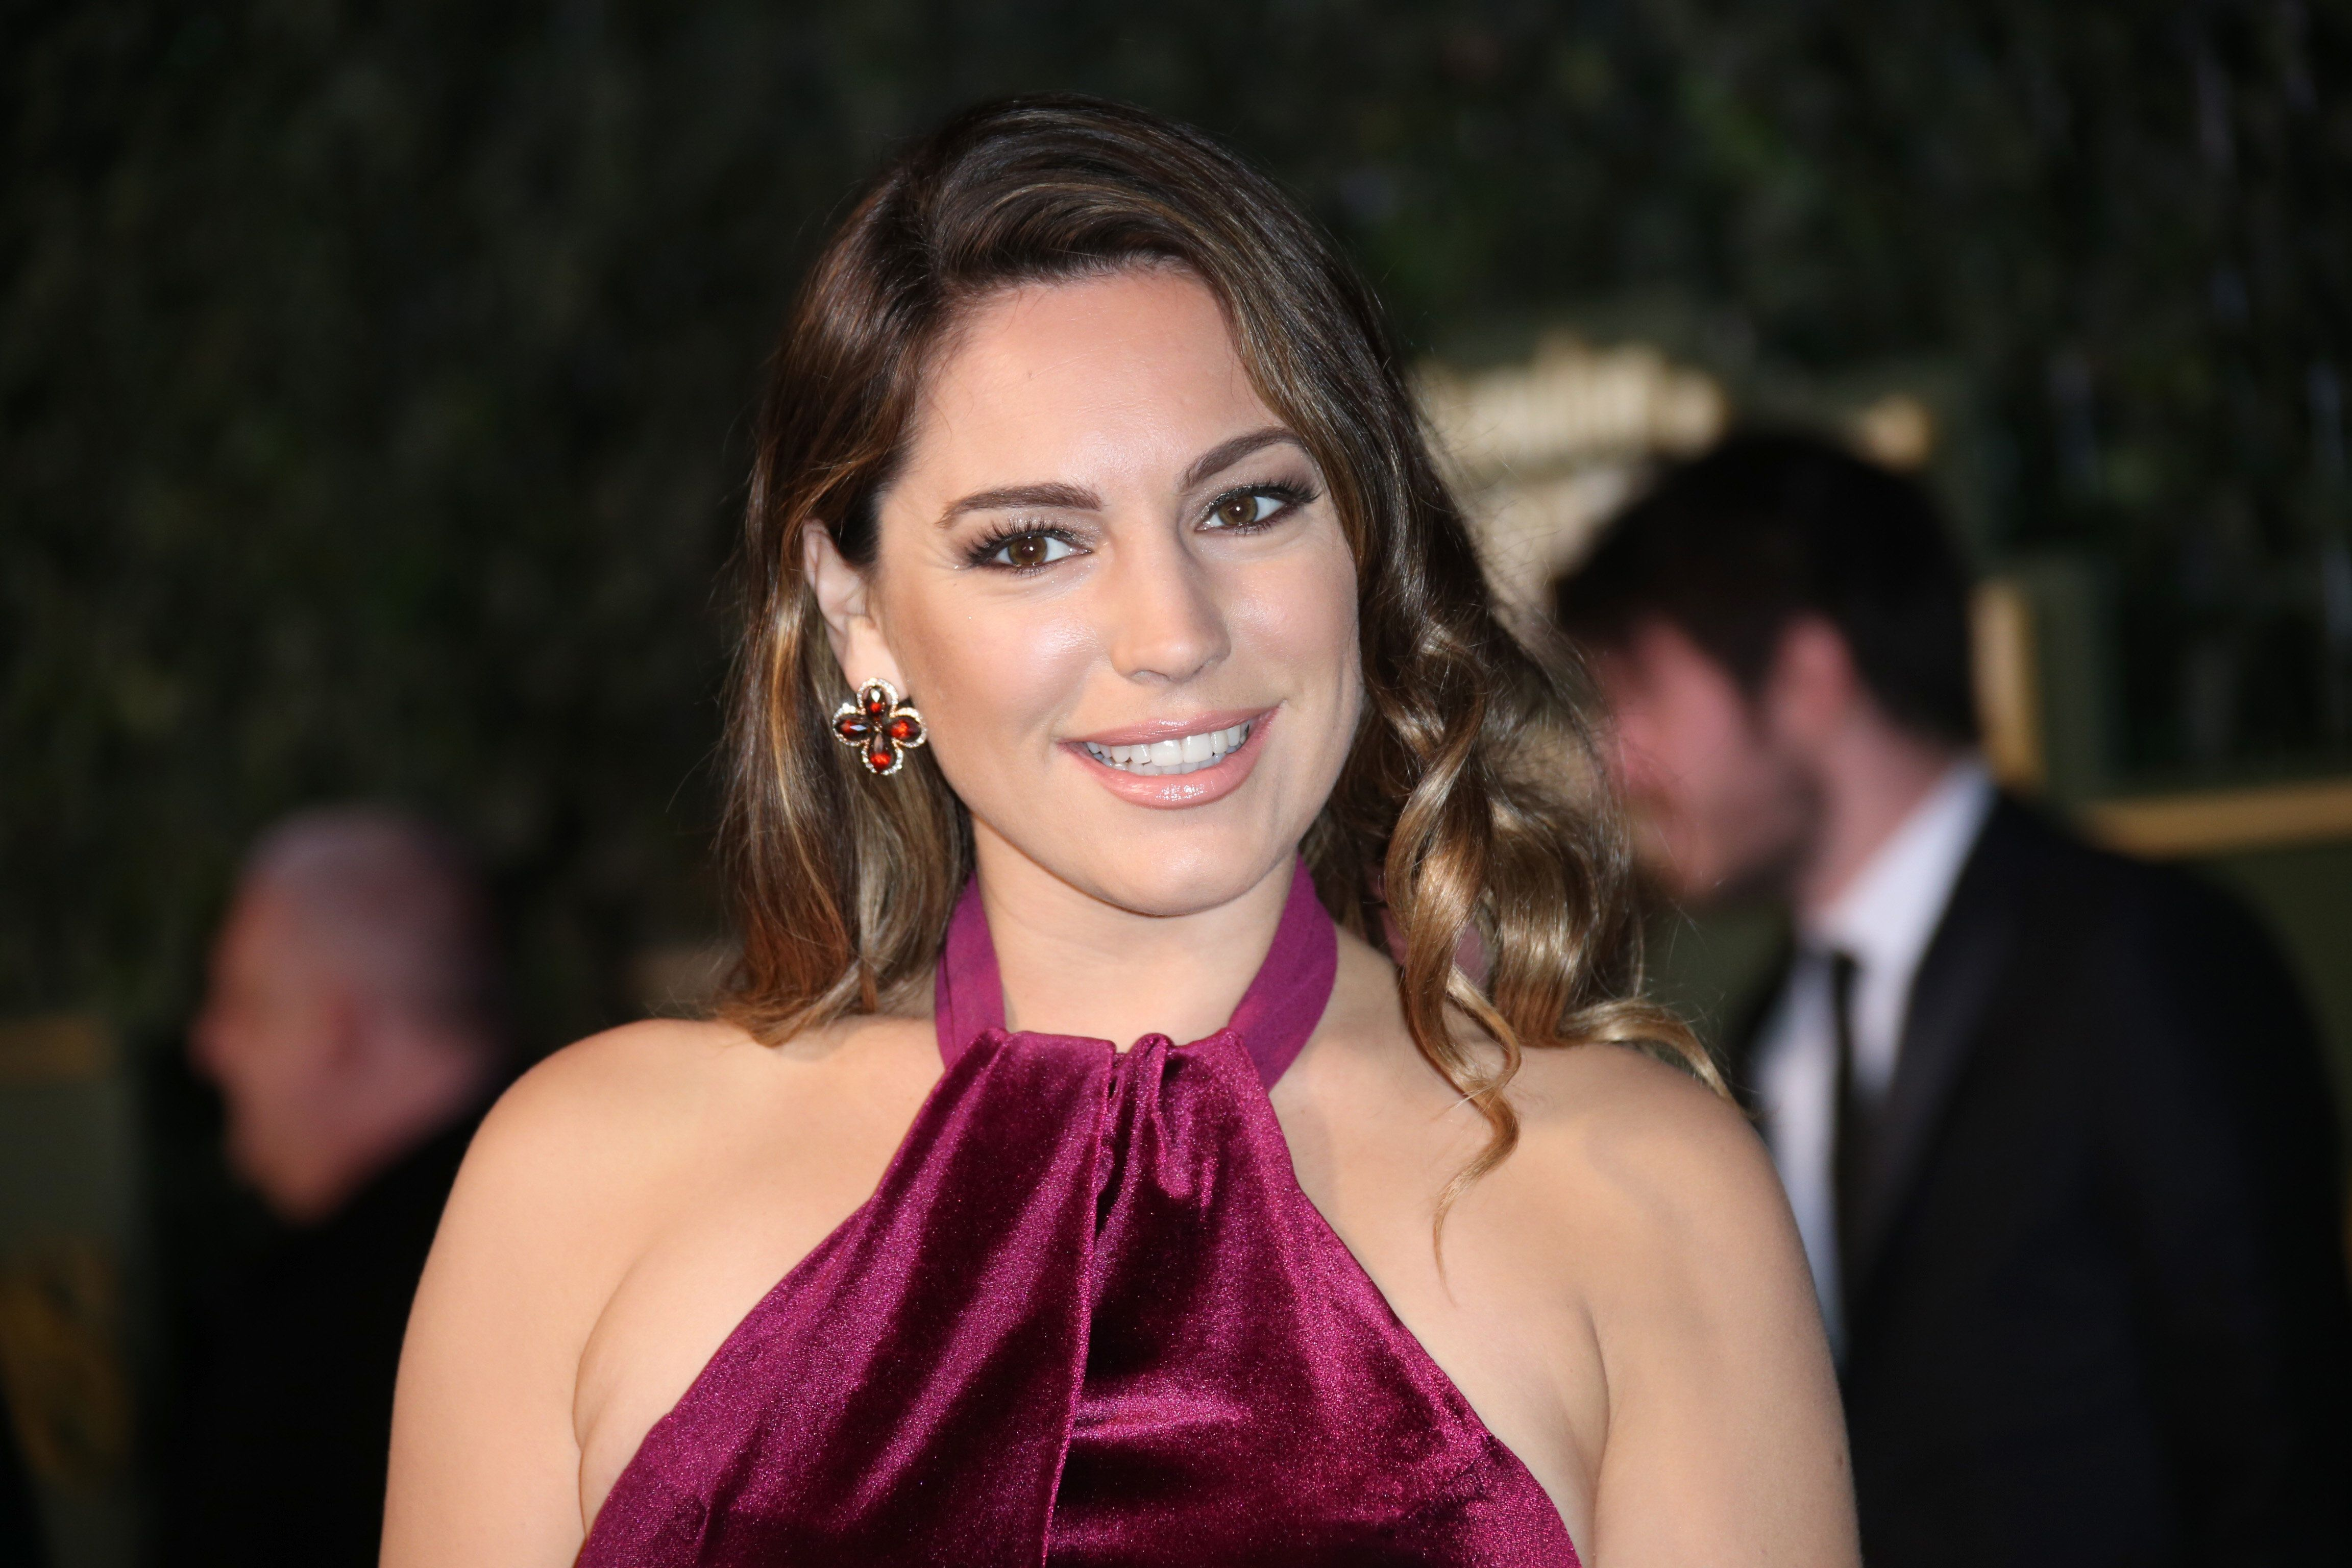 Kelly Brook Makes An Astonishing Claim About Her